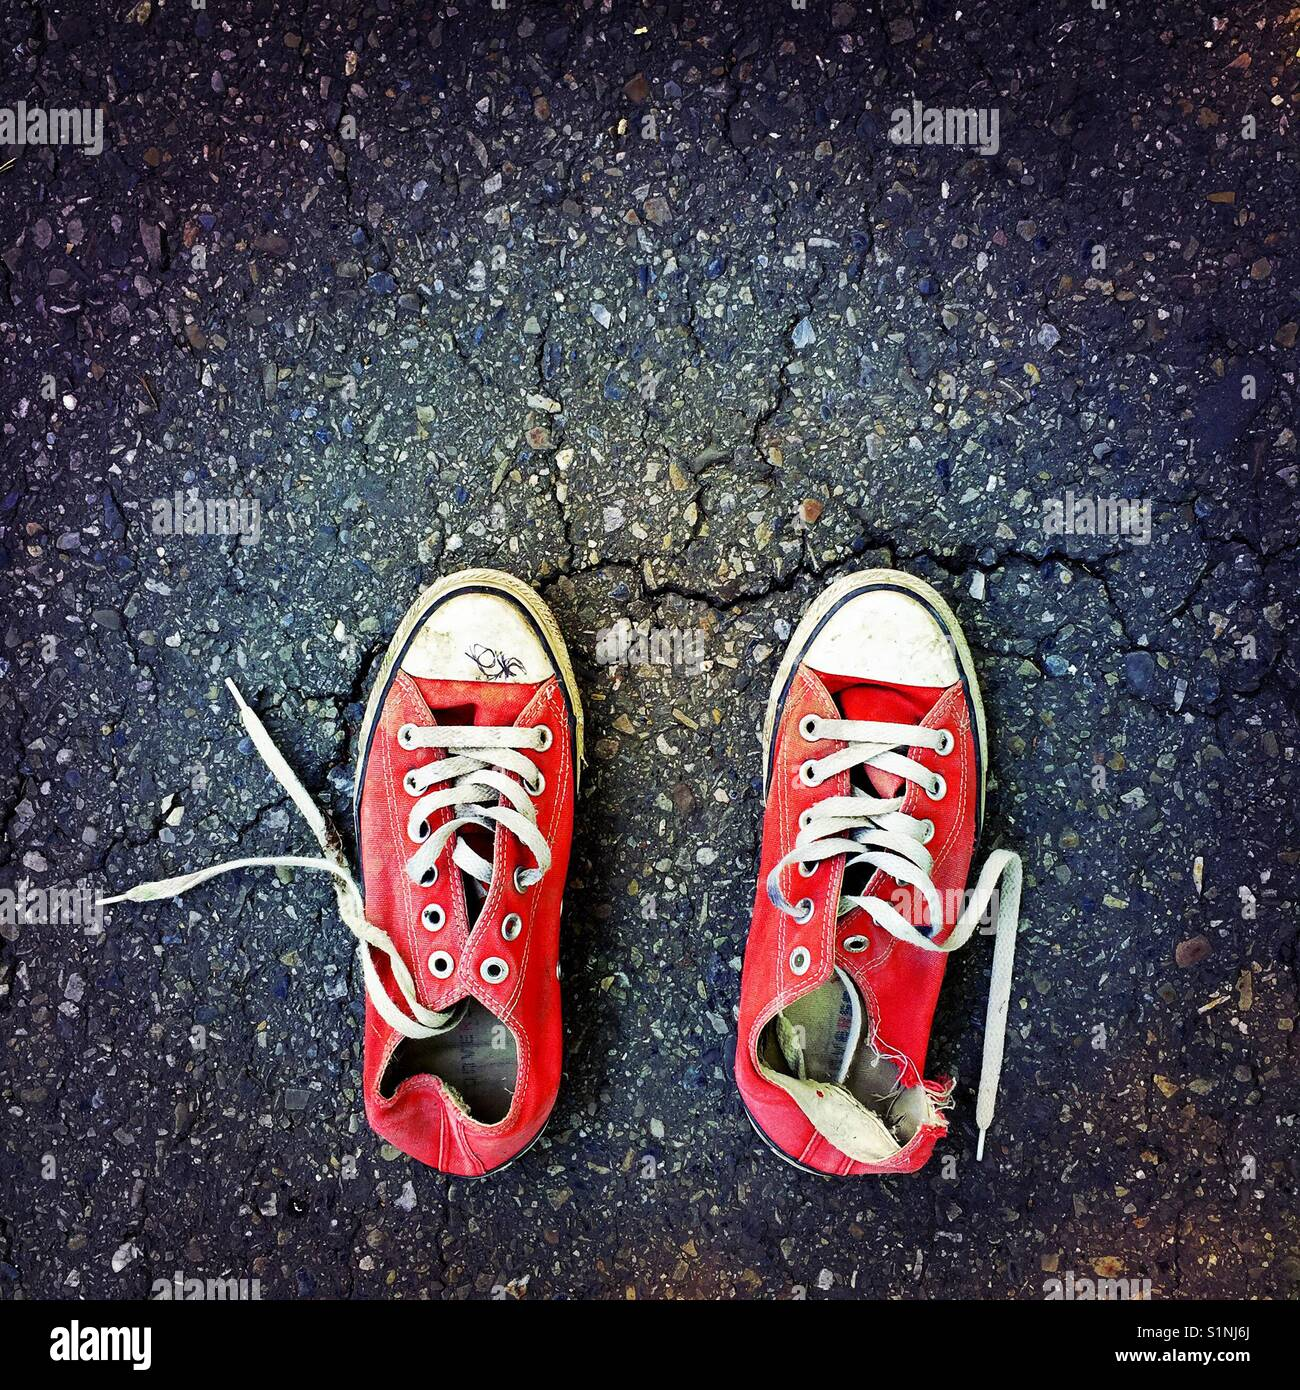 60bc4b3cdc73 An old worn out pair of red Converse sneakers on an asphalt surface ...